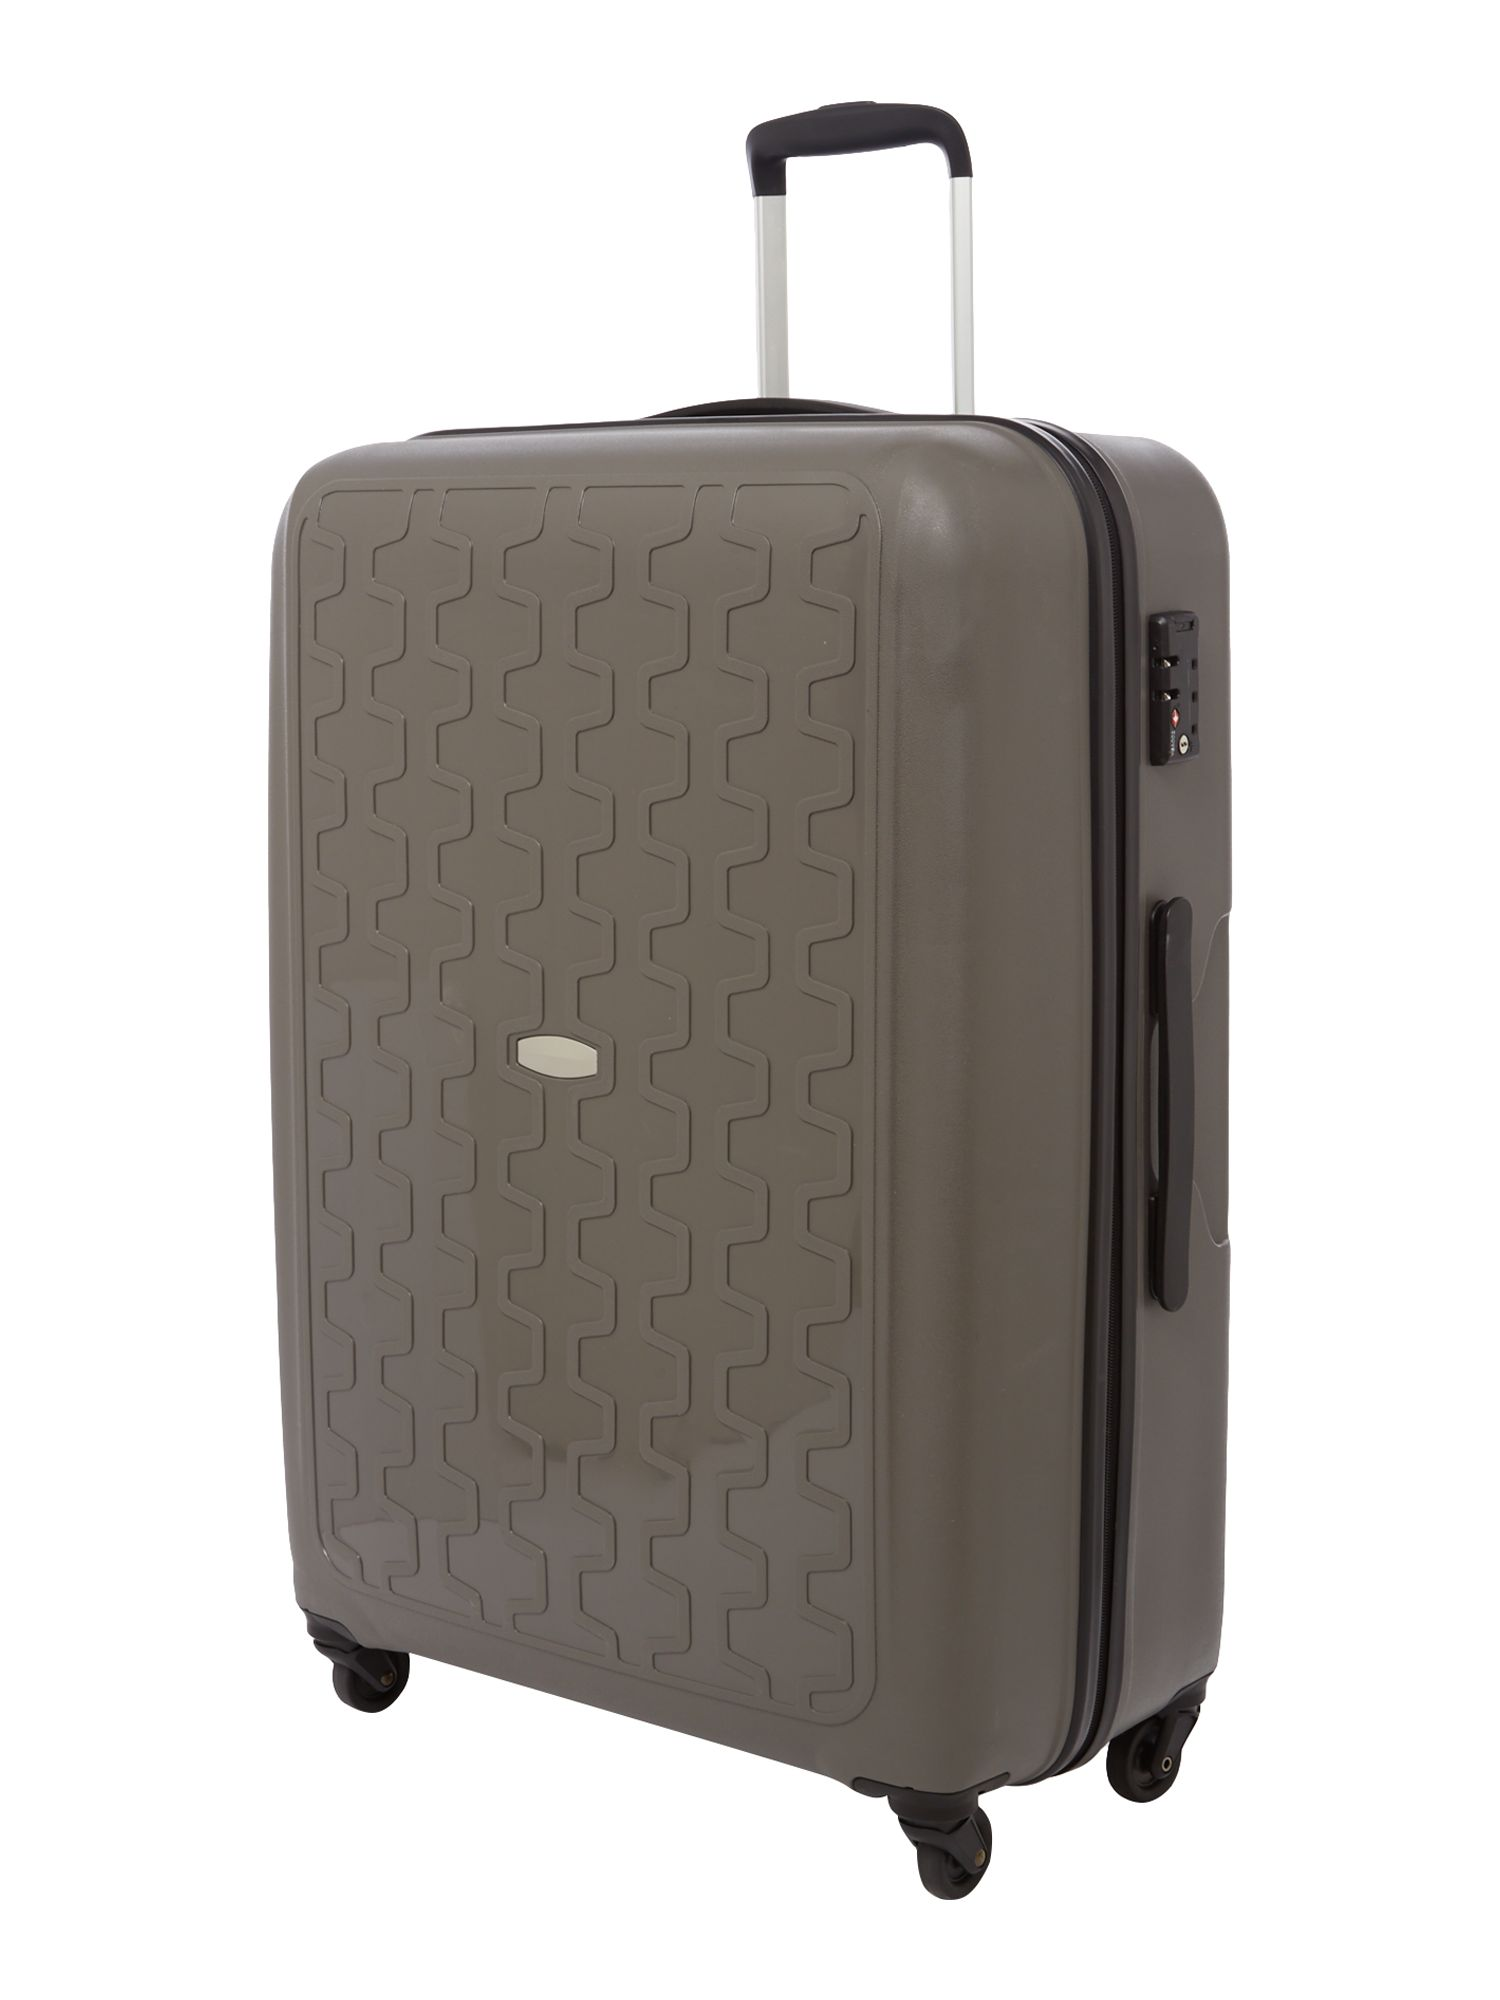 Moblite grey 4 wheel large case